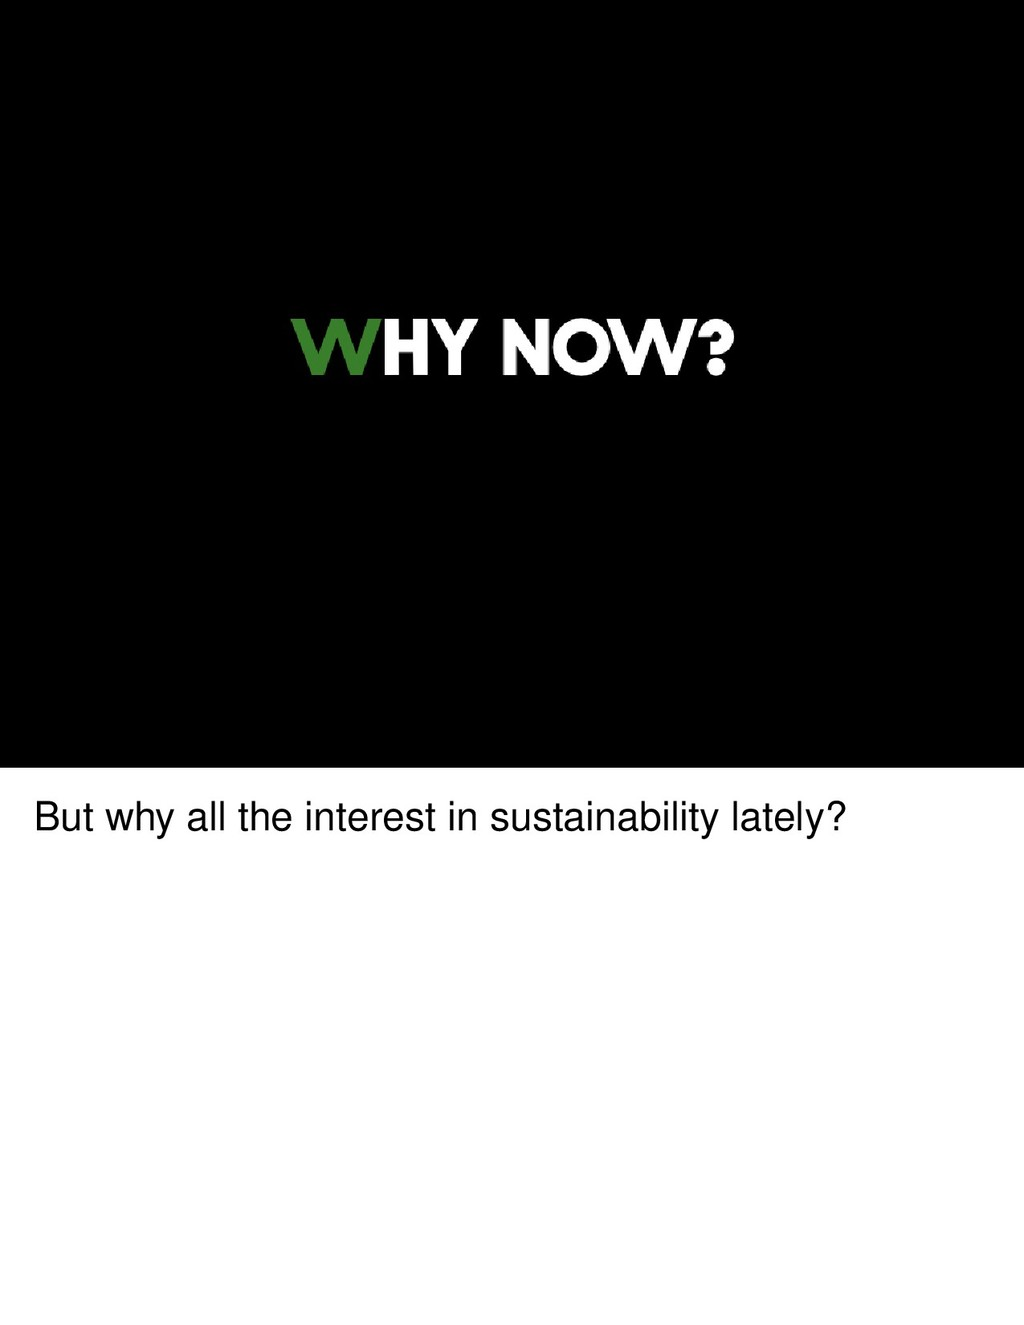 But why all the interest in sustainability late...